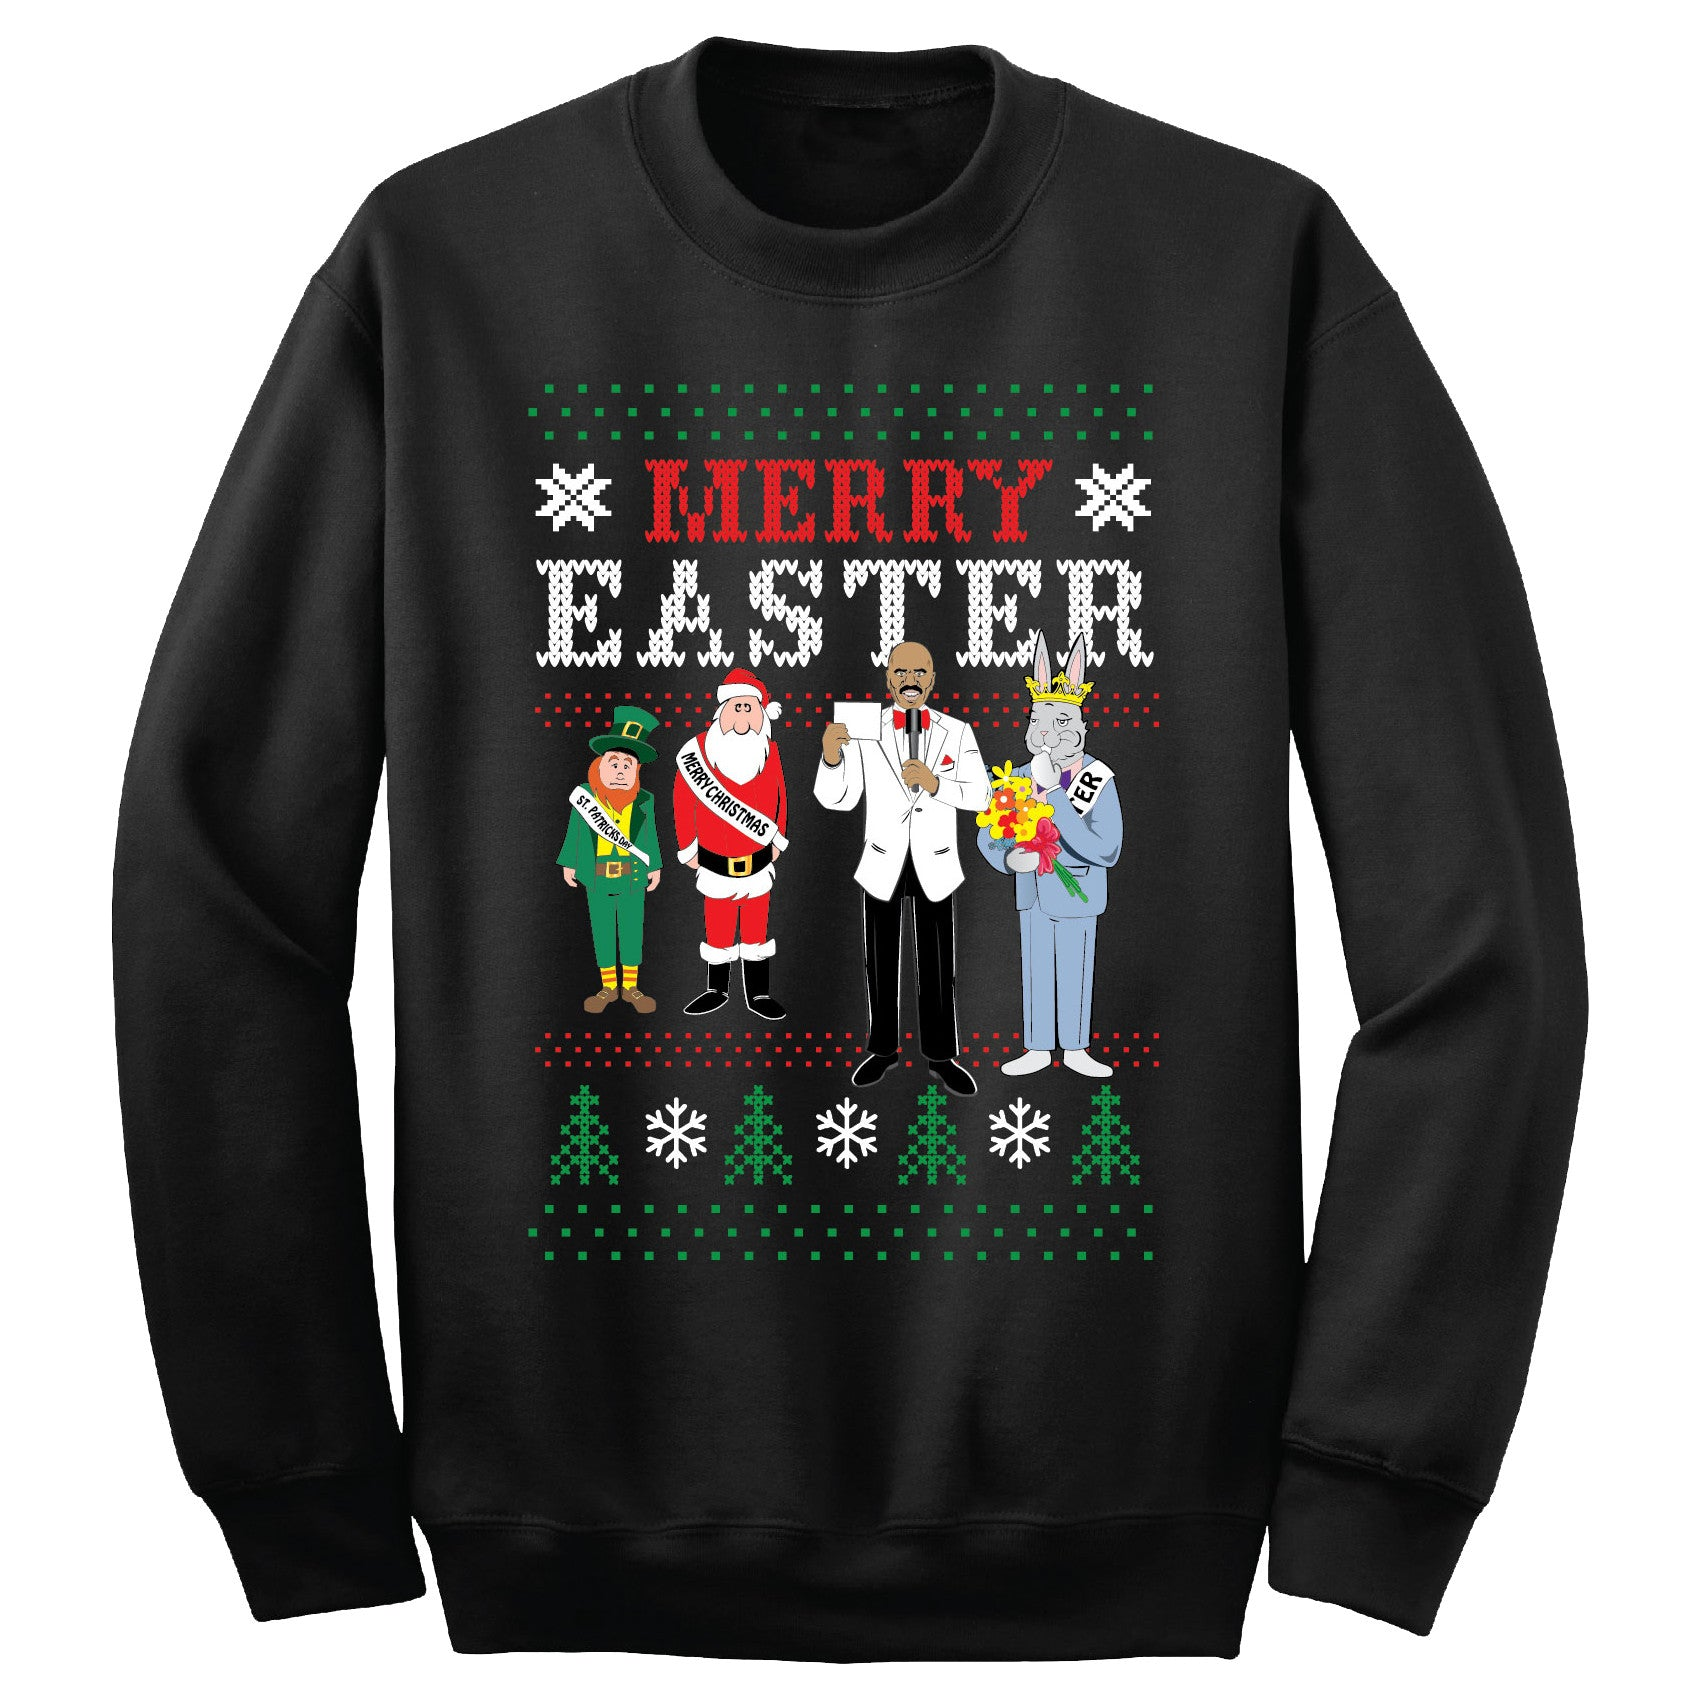 Steve Harvey Merry Easter Sweatshirt